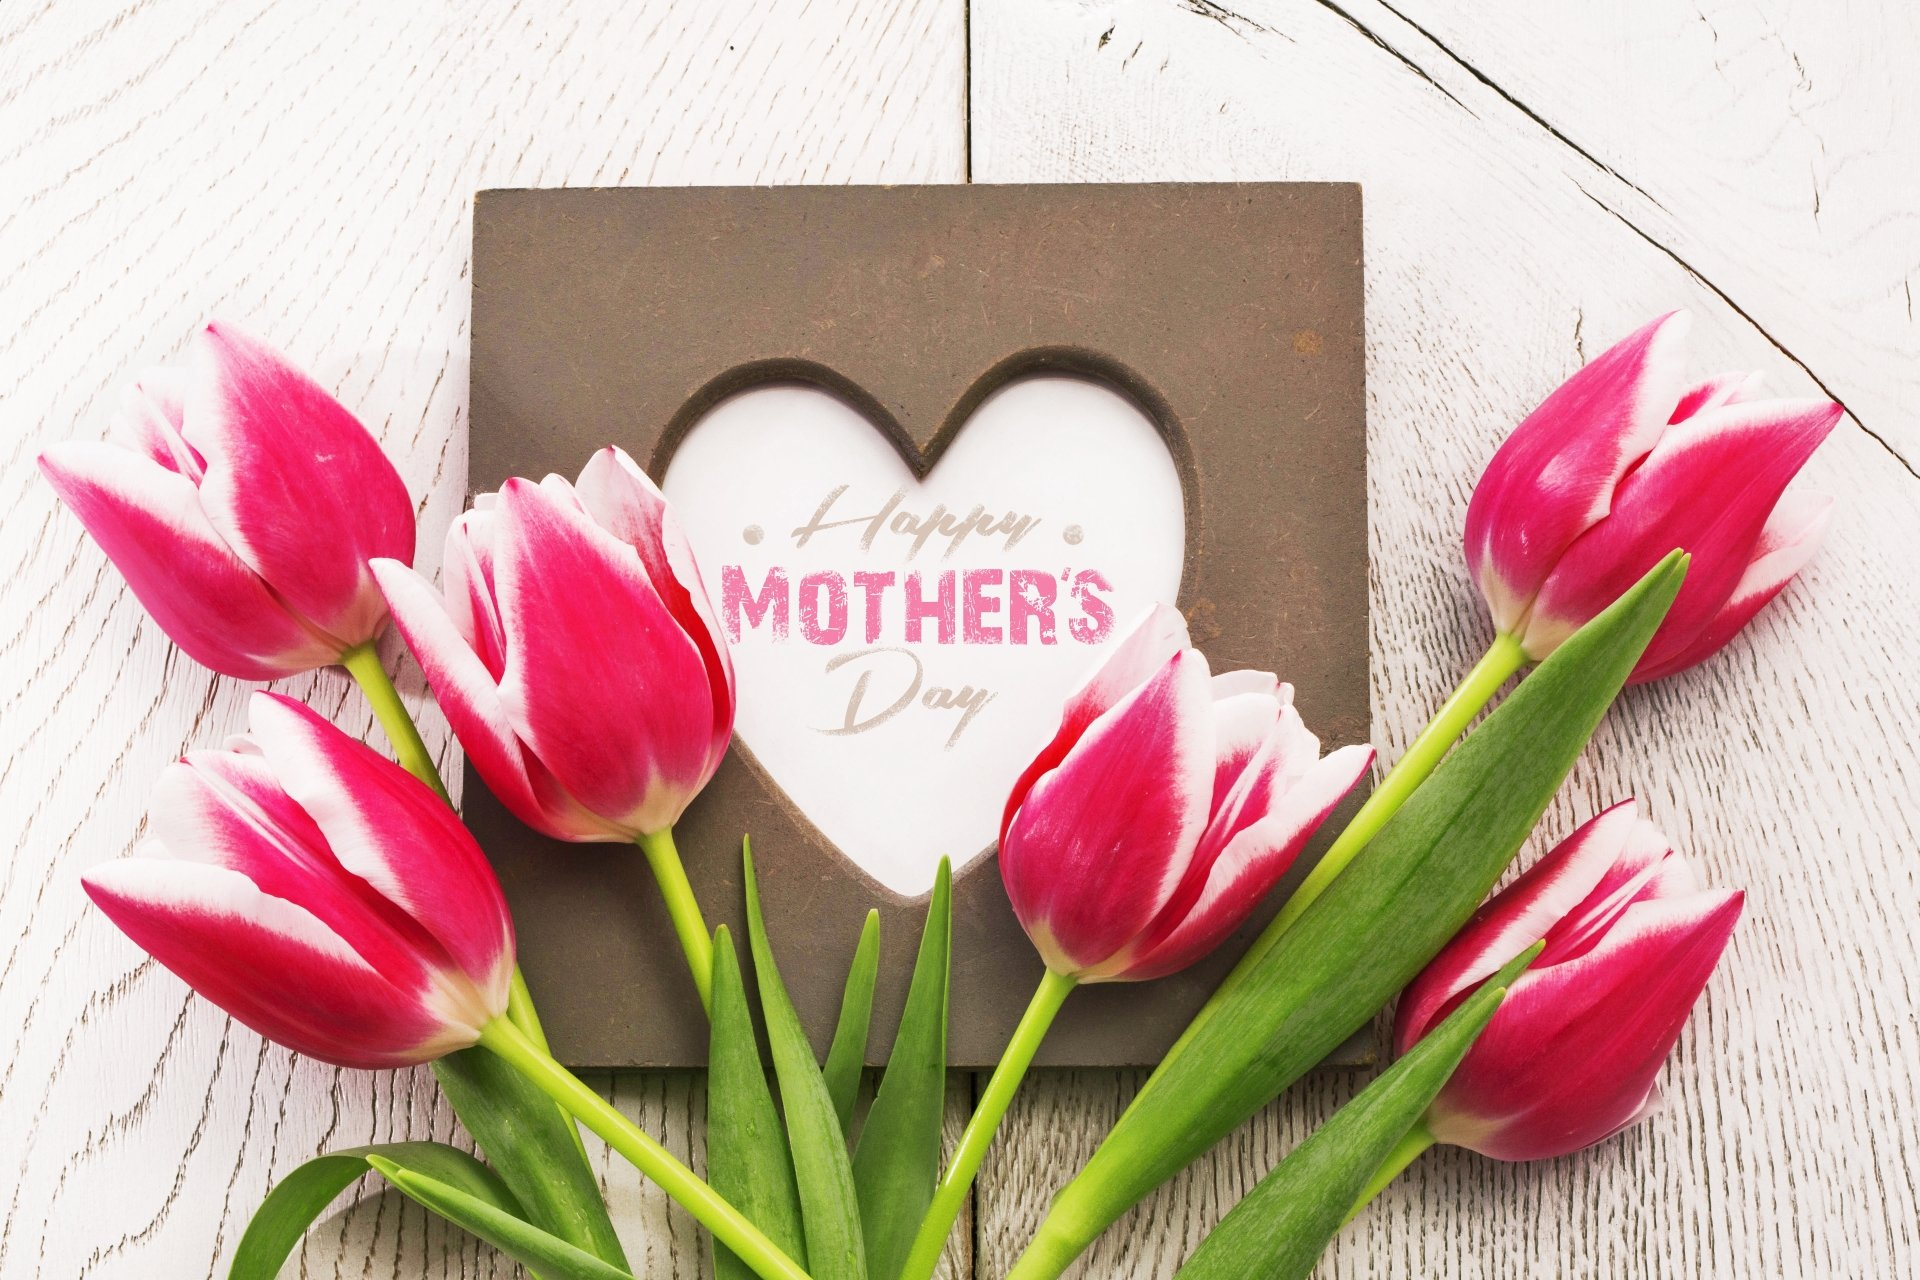 Holiday - Mother's Day  Flower Tulip Pink Flower Wallpaper